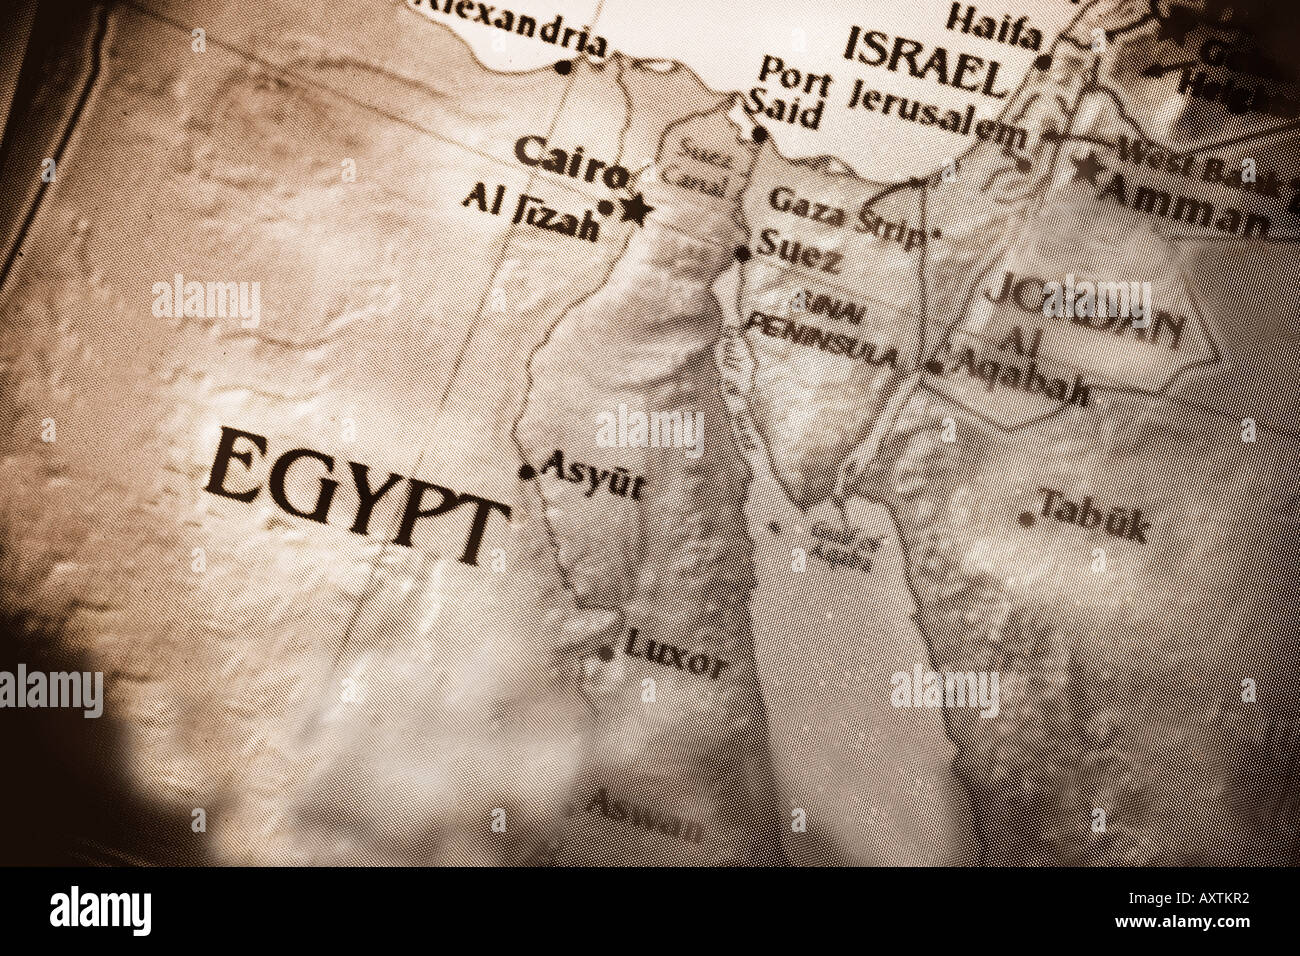 Closeup map showing the countries Egypt Israel and Jordan in